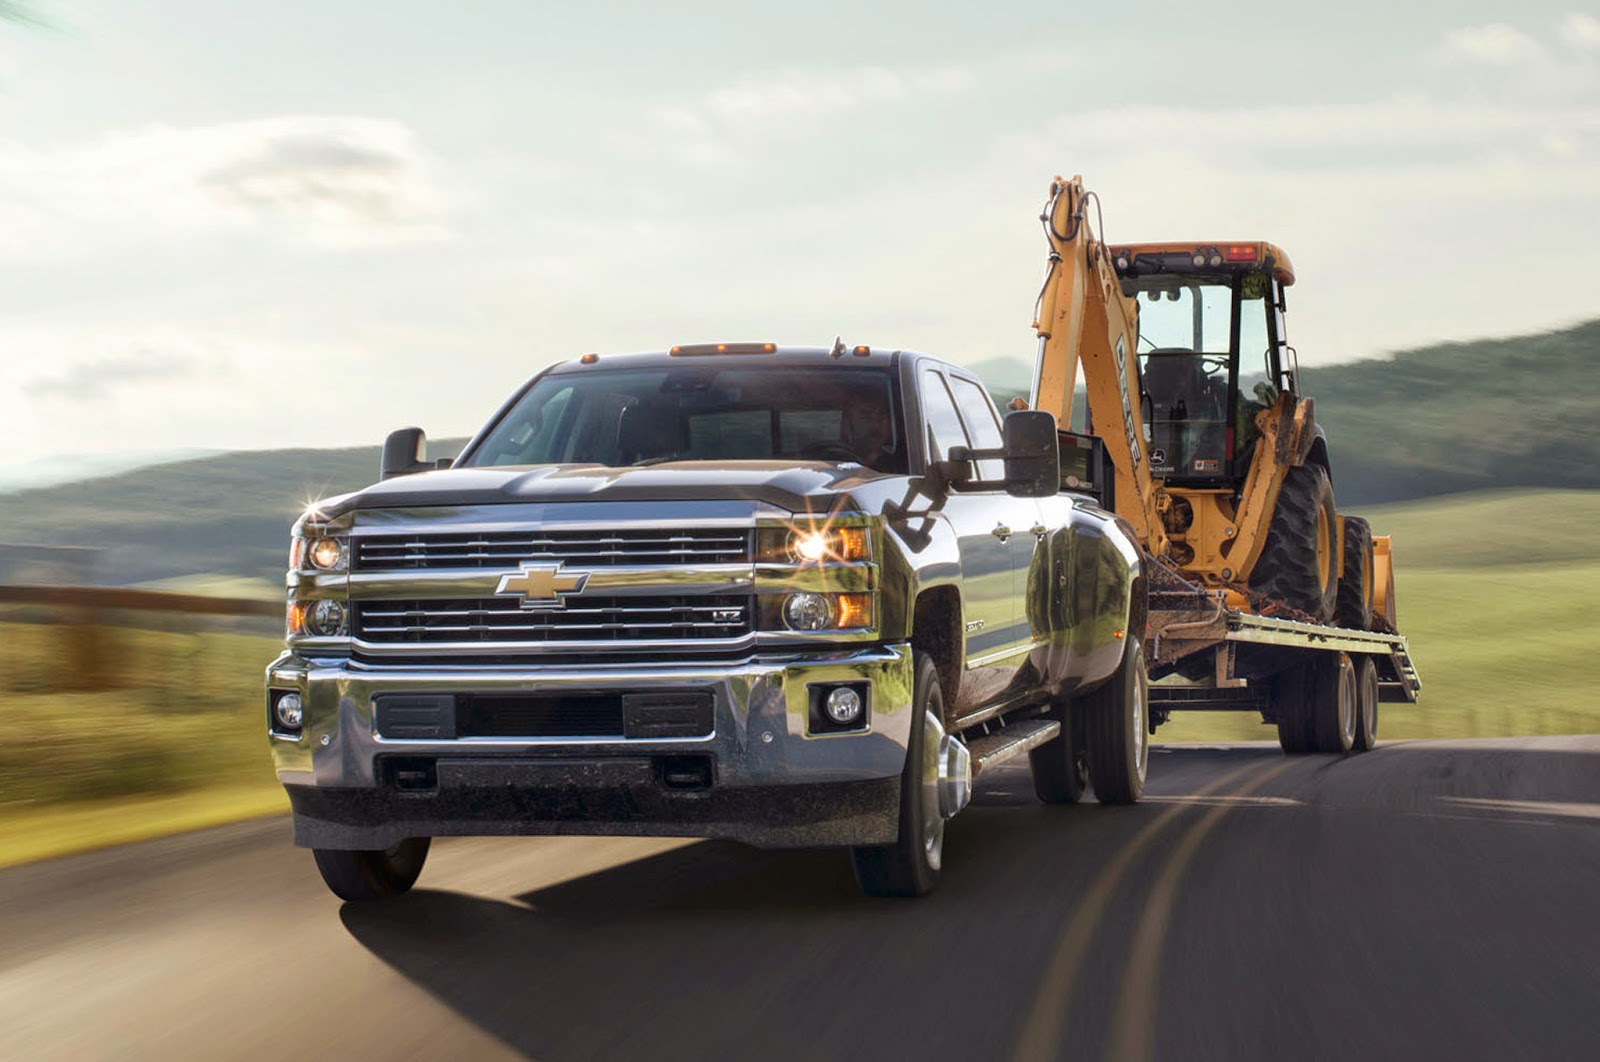 2015 Chevy Silverado Gets 8-Speed Transmission